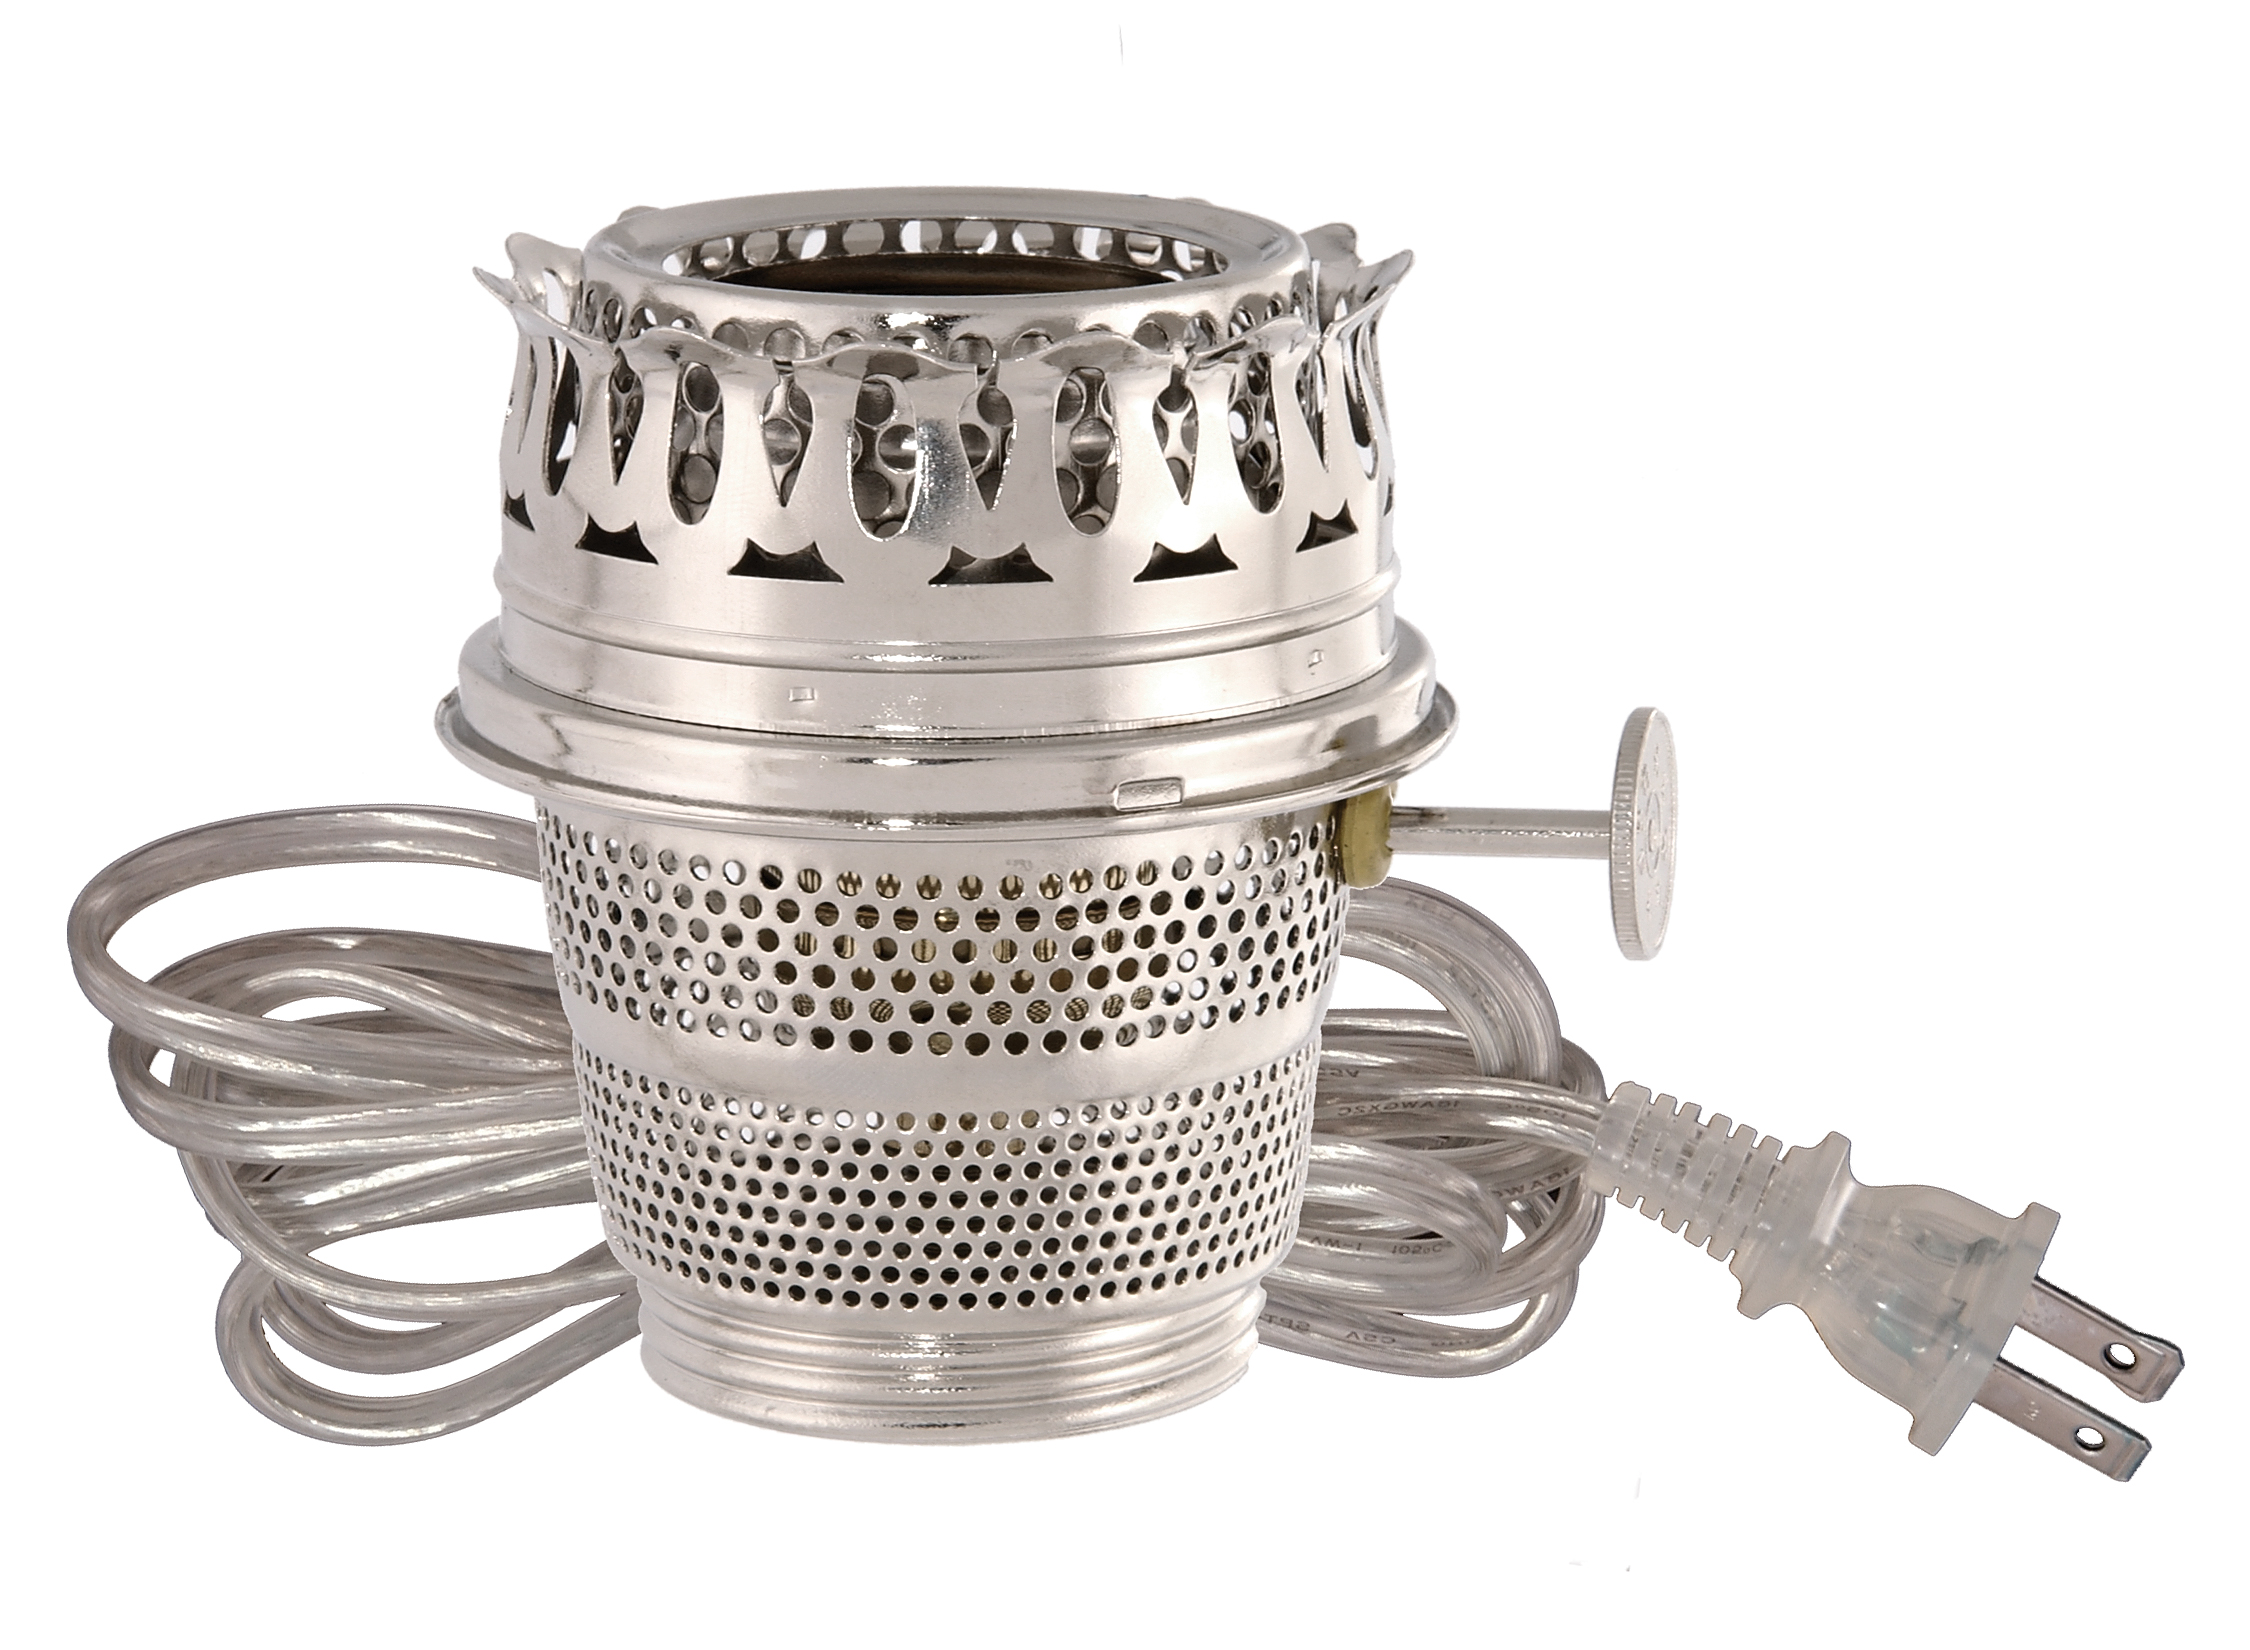 Nickel Plated Electrified Burner Designed To Fit Aladdin